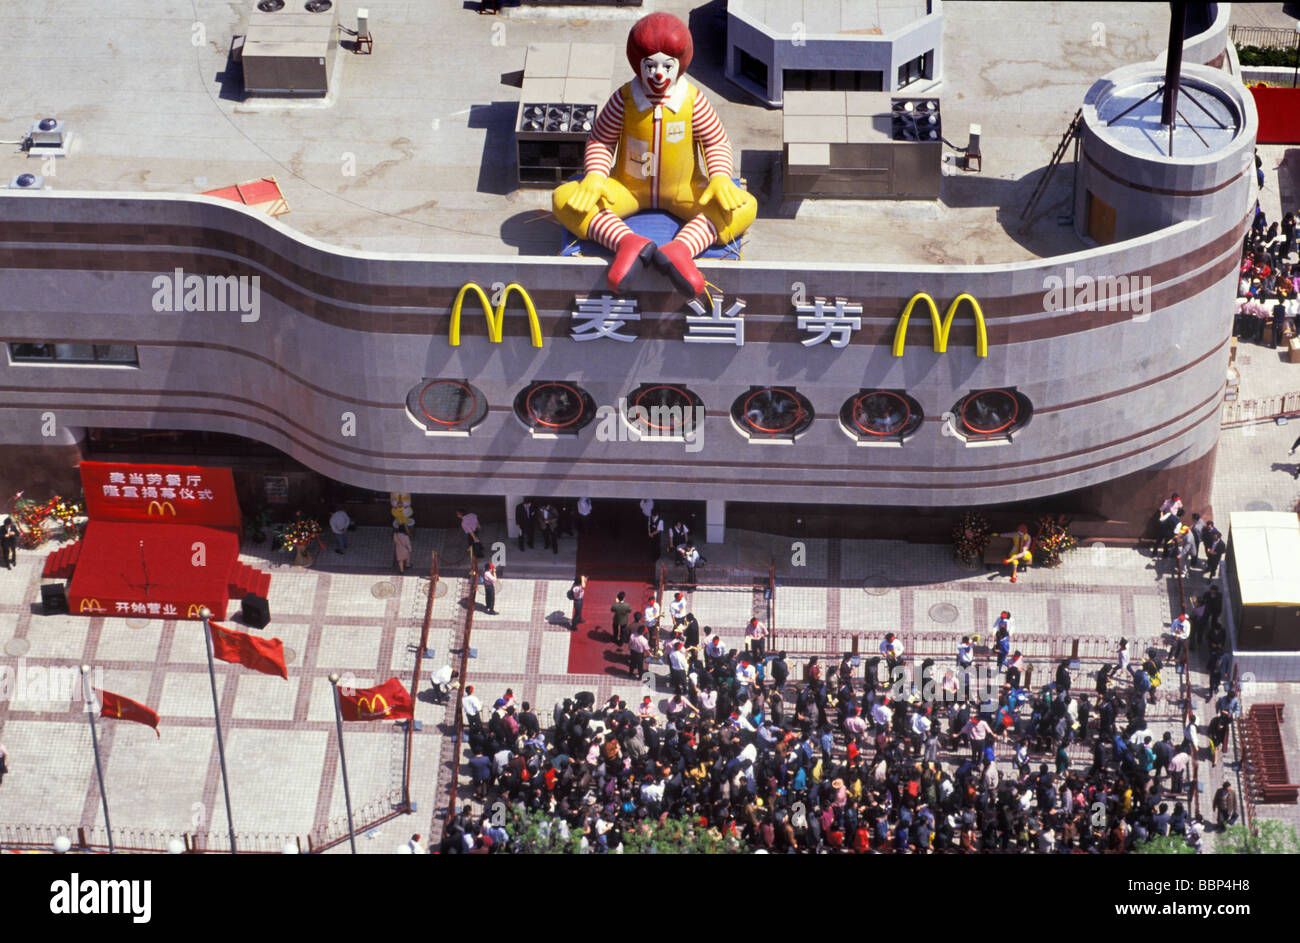 McDonald's as a Disneyized Institution